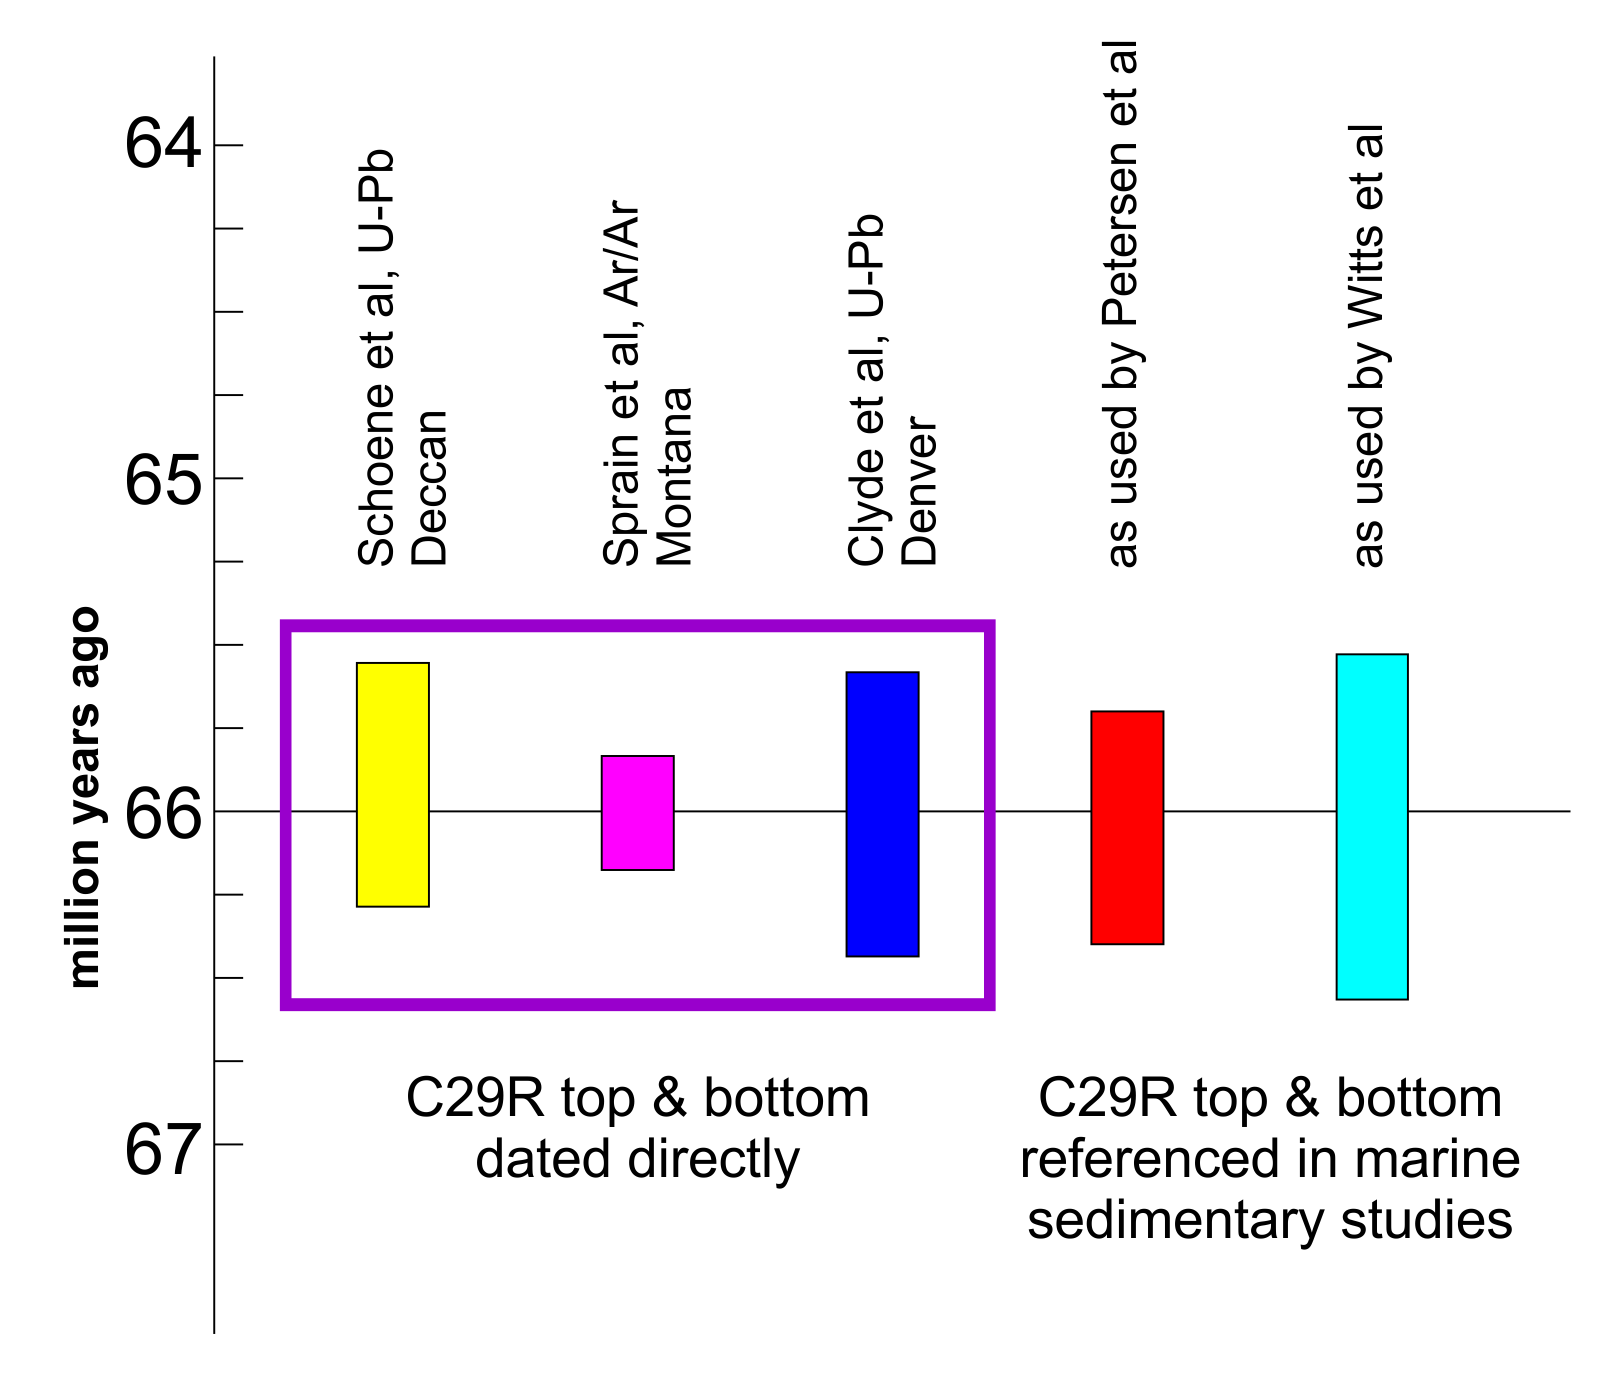 Variability in end-Cretaceous C29R